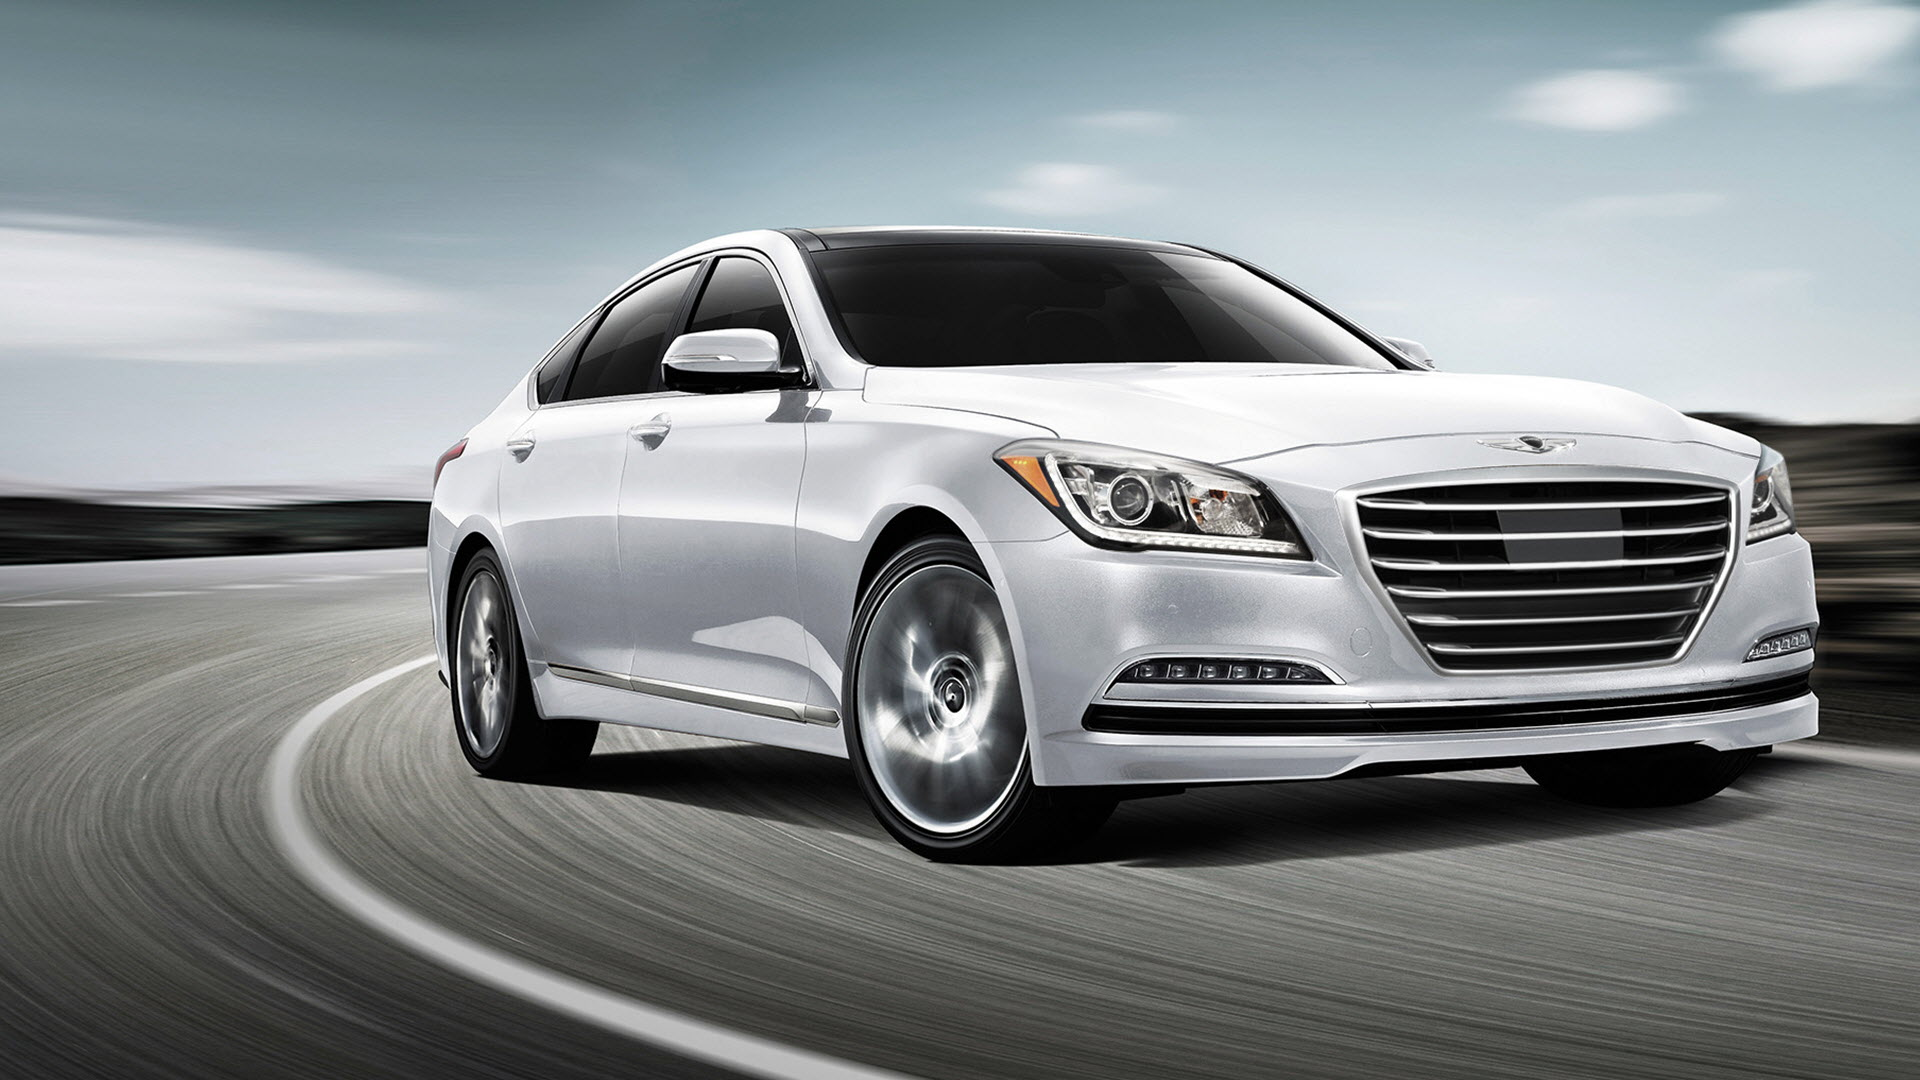 Genesis G80 - Mechanical & Safety Features | Genesis USA